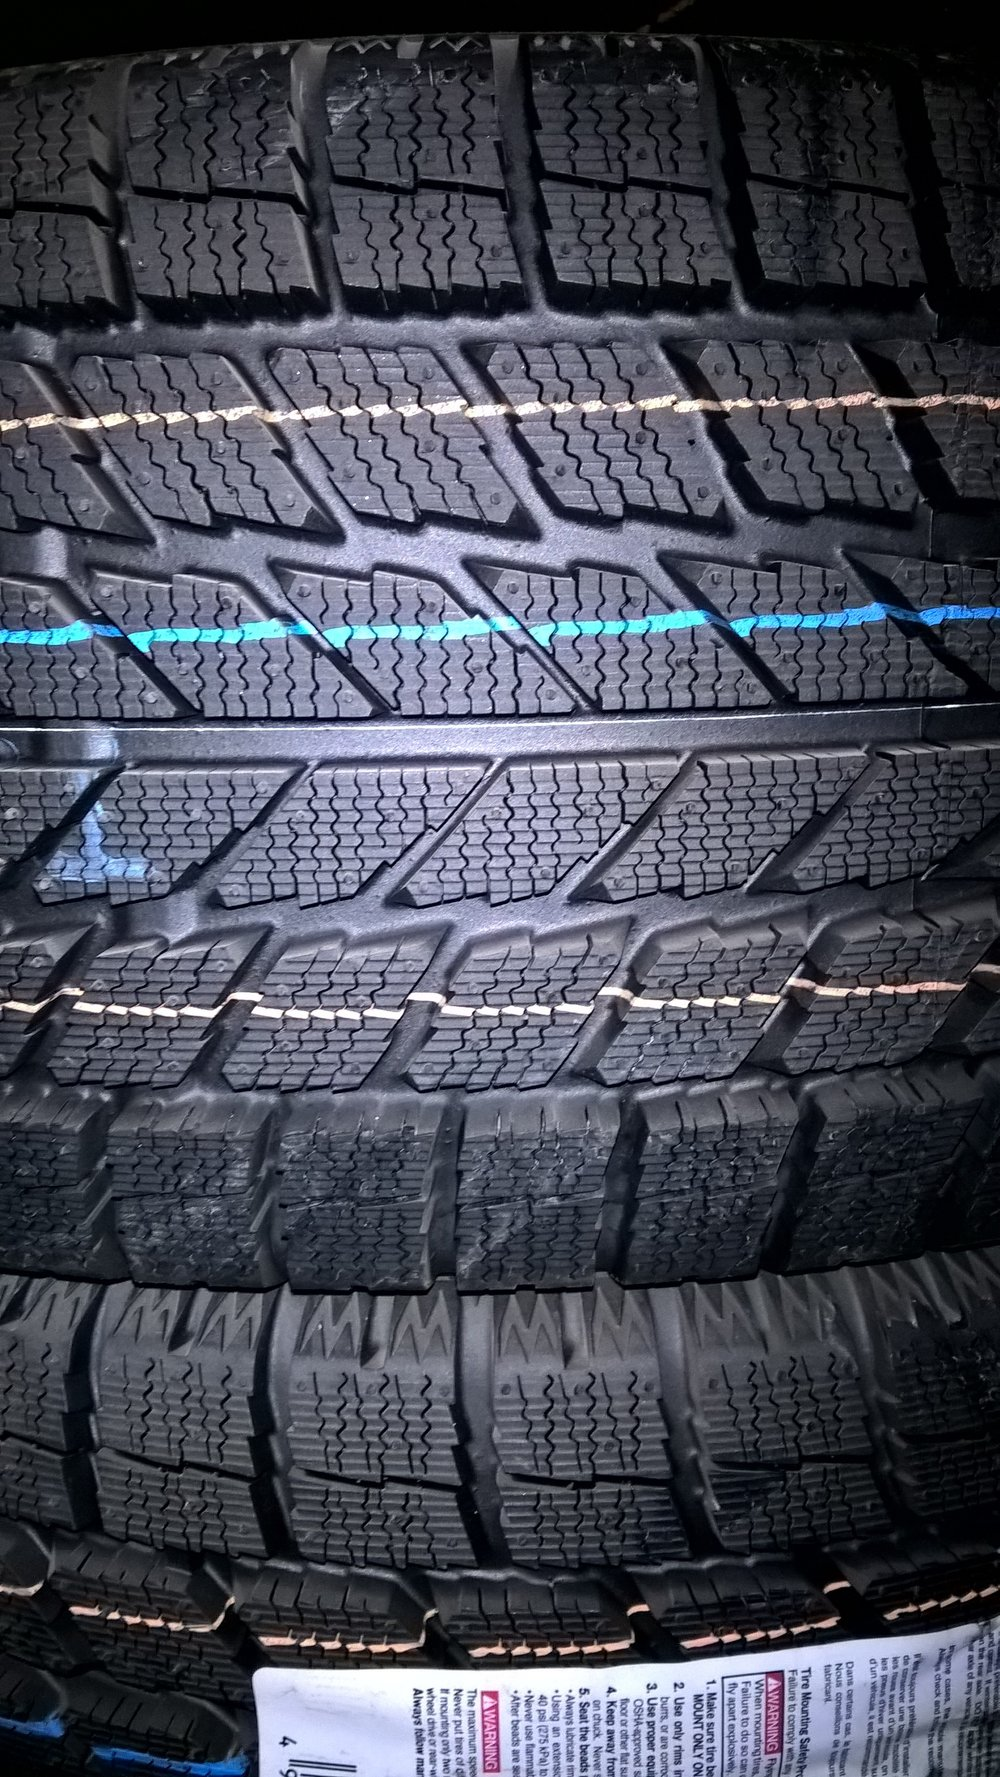 Toyo Tire Tread Detail